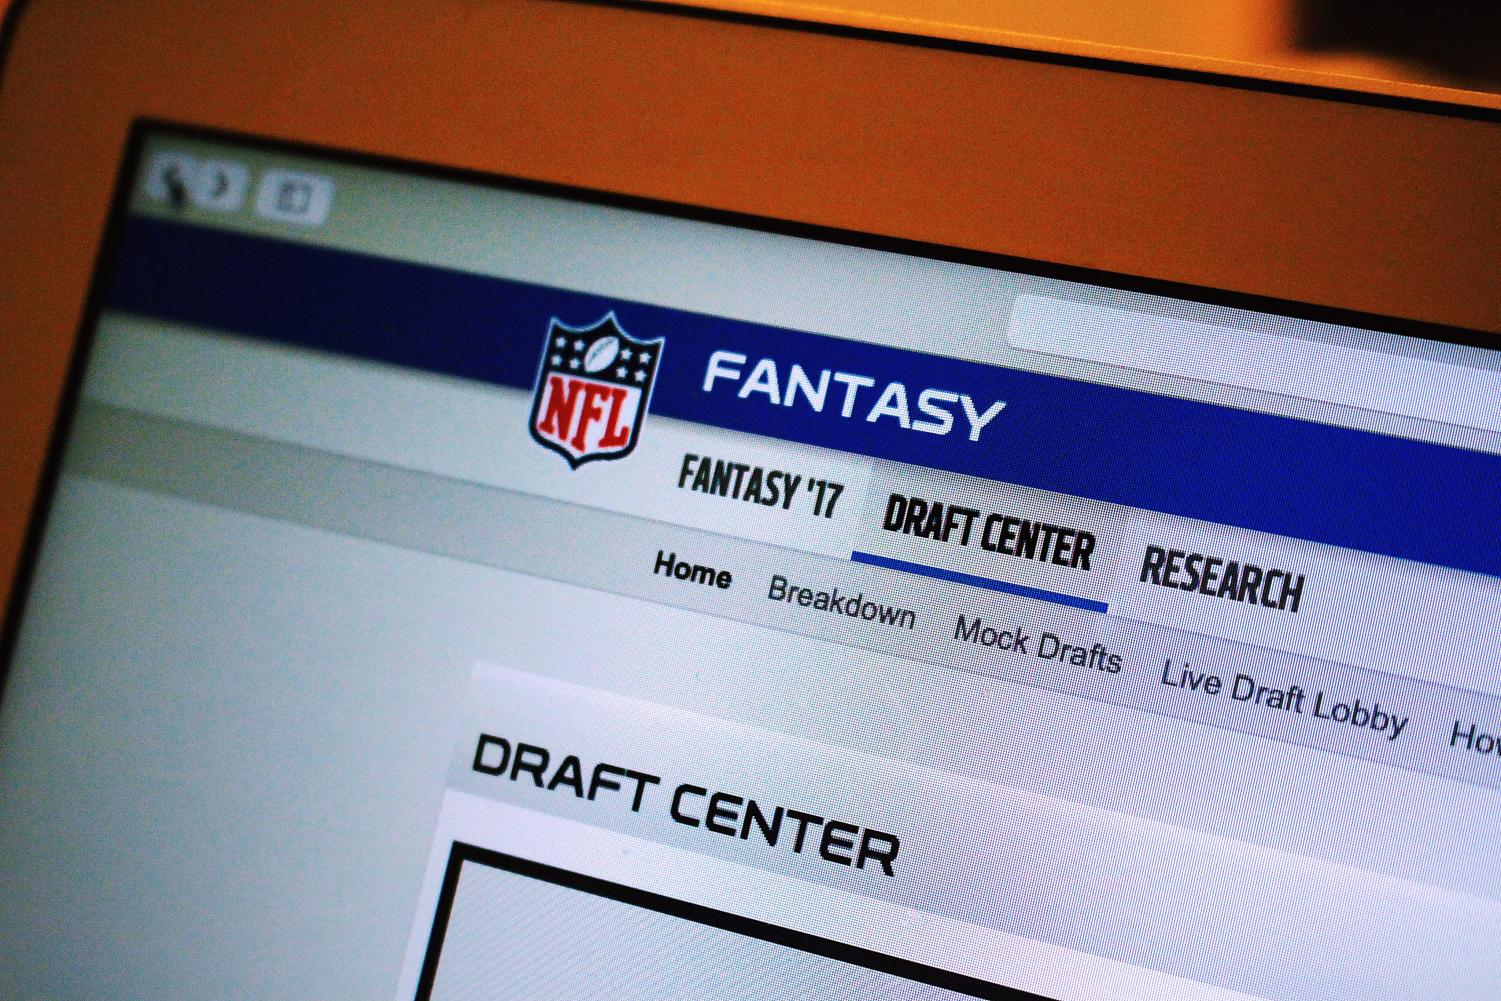 NFL Fantasy Football is one of the many organizations that hosts leagues for competition. The draft center is a major aspect of the game where teams select their players, deciding who should represent them in the season. Photo by Olivia Matthews.